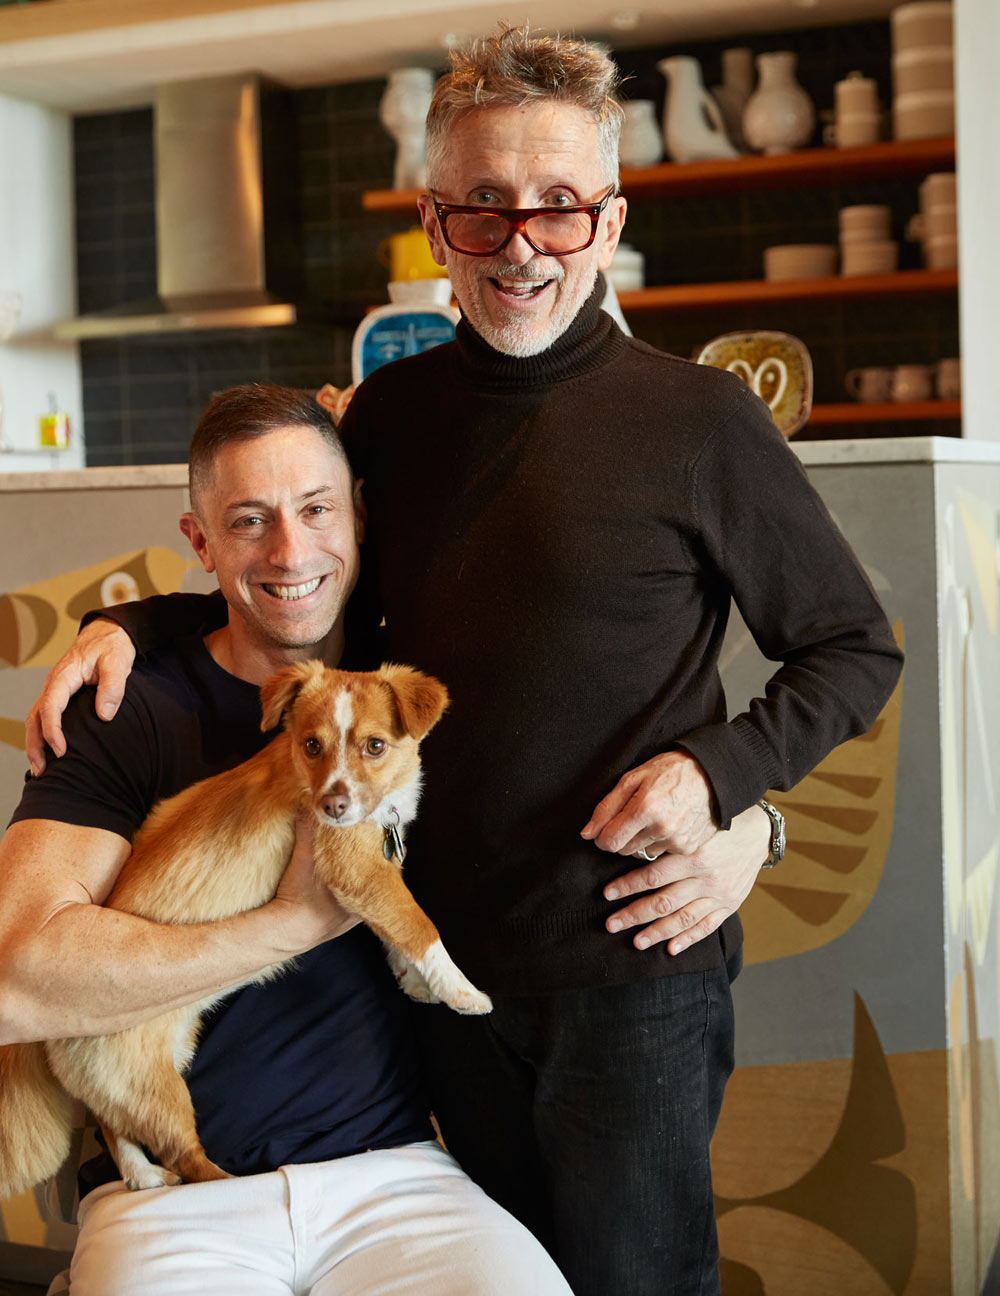 Jonathan and his partner, Simon Doonan, and their dog FoxyLady.